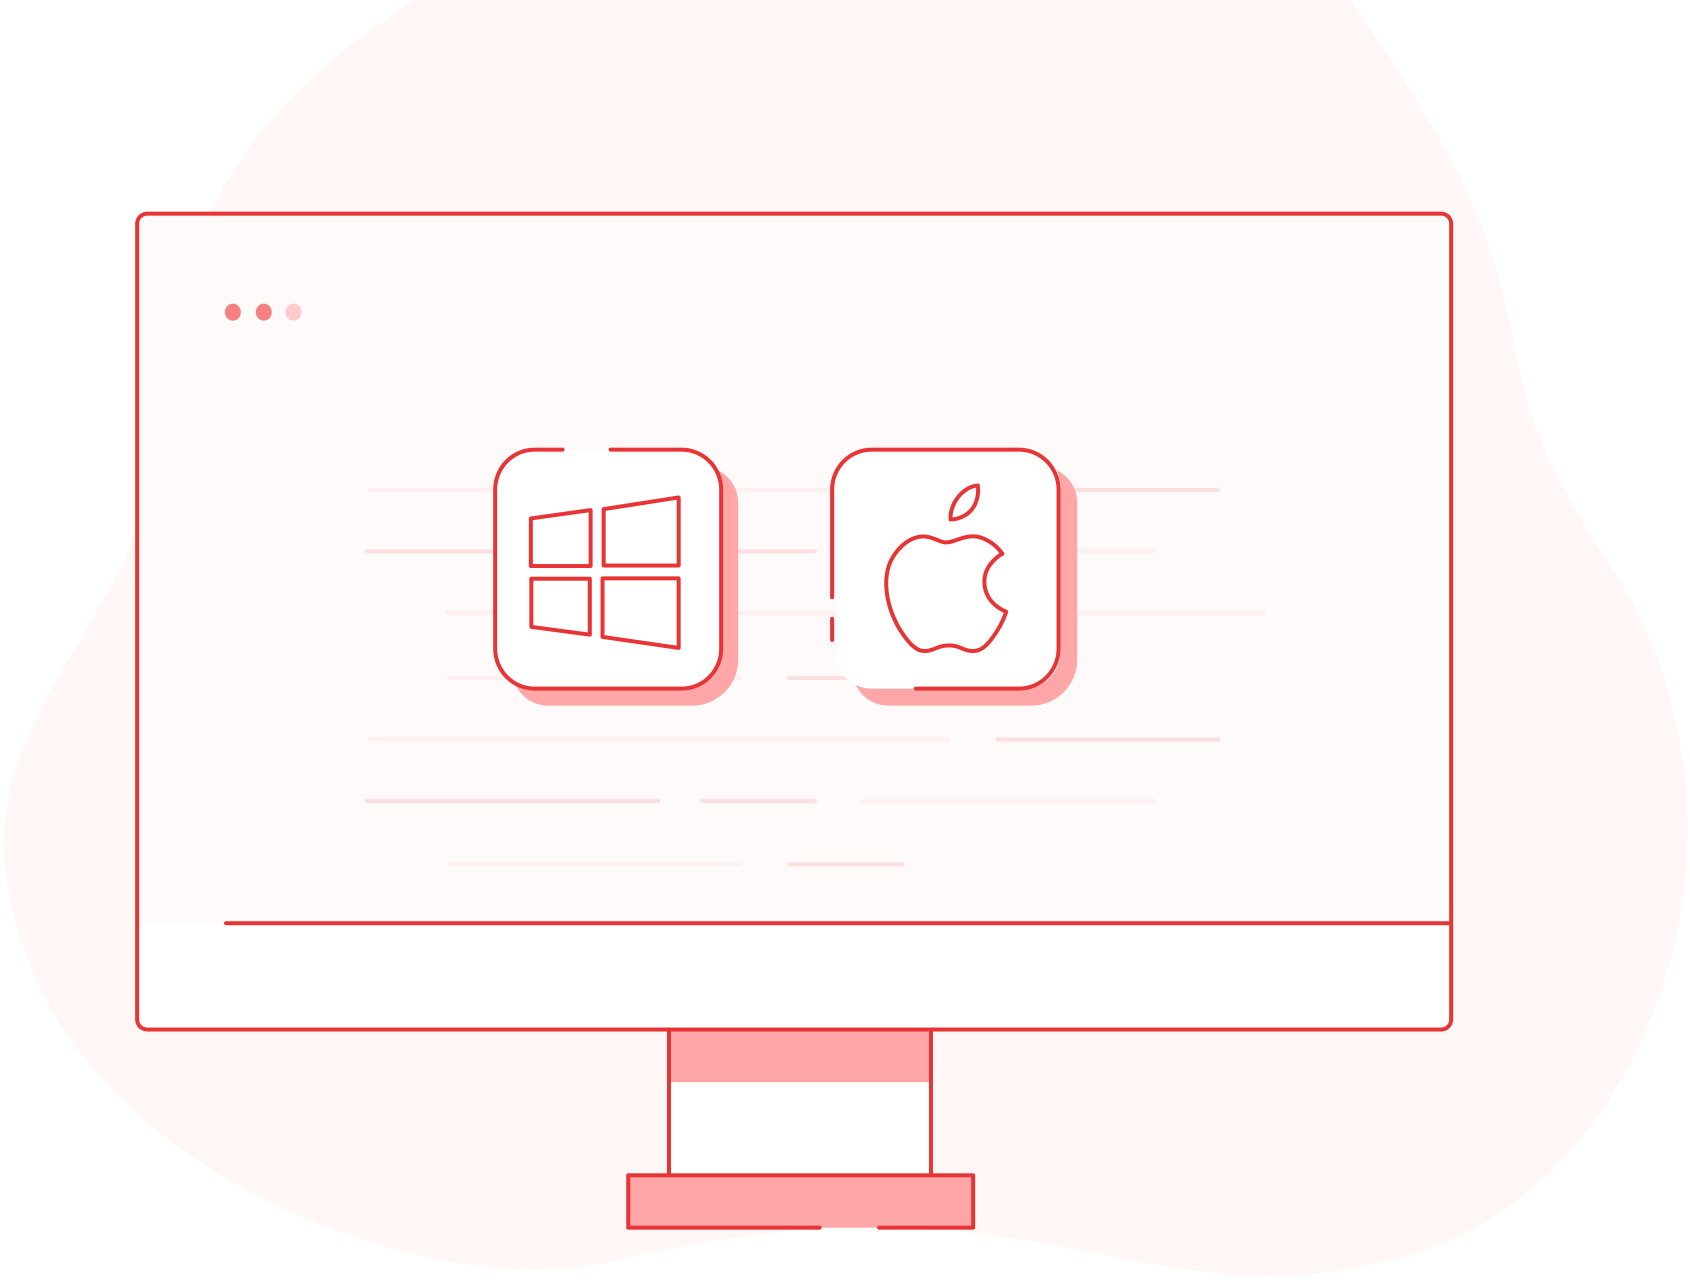 Illustration of a computer with the Windows and Apple logo